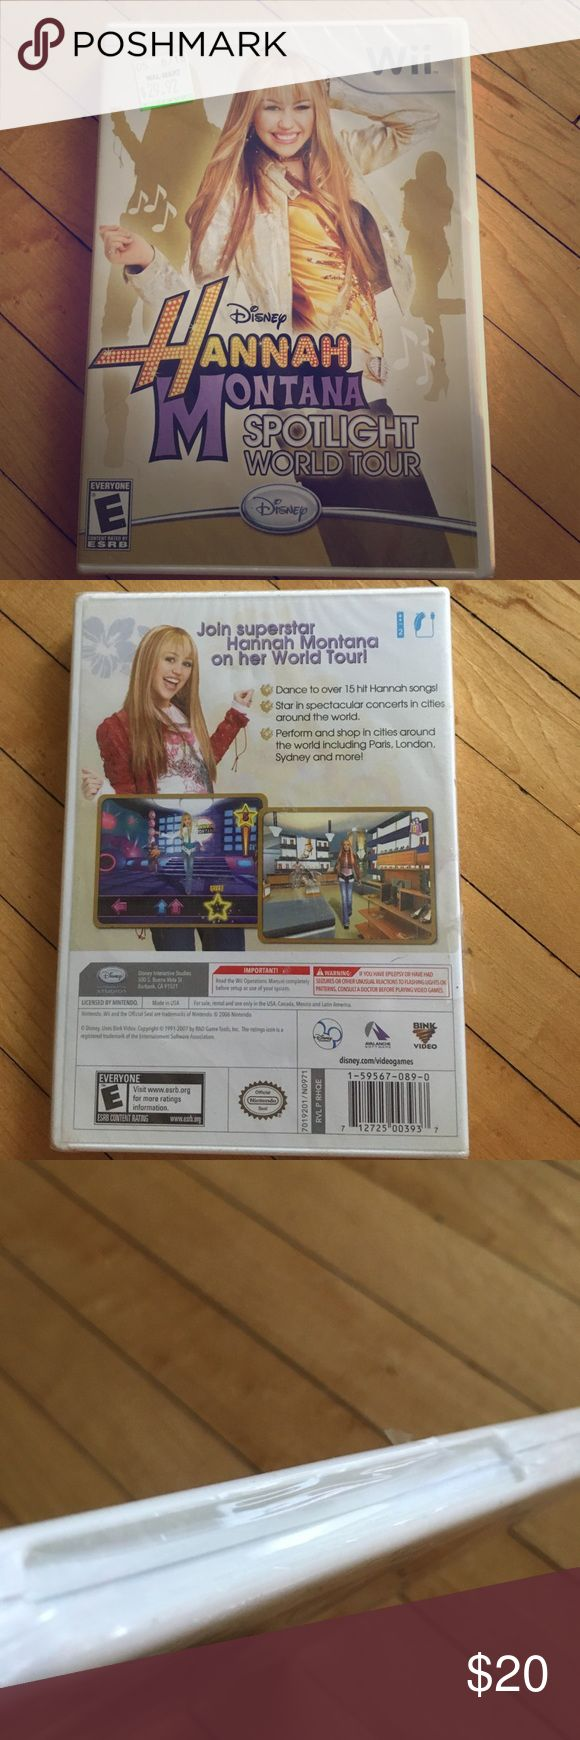 New with tags Girls Nintendo WII game, Disney Disney Hannah Montana spotlight world tour game. New in package. Rated E for  everyone. Disney Other